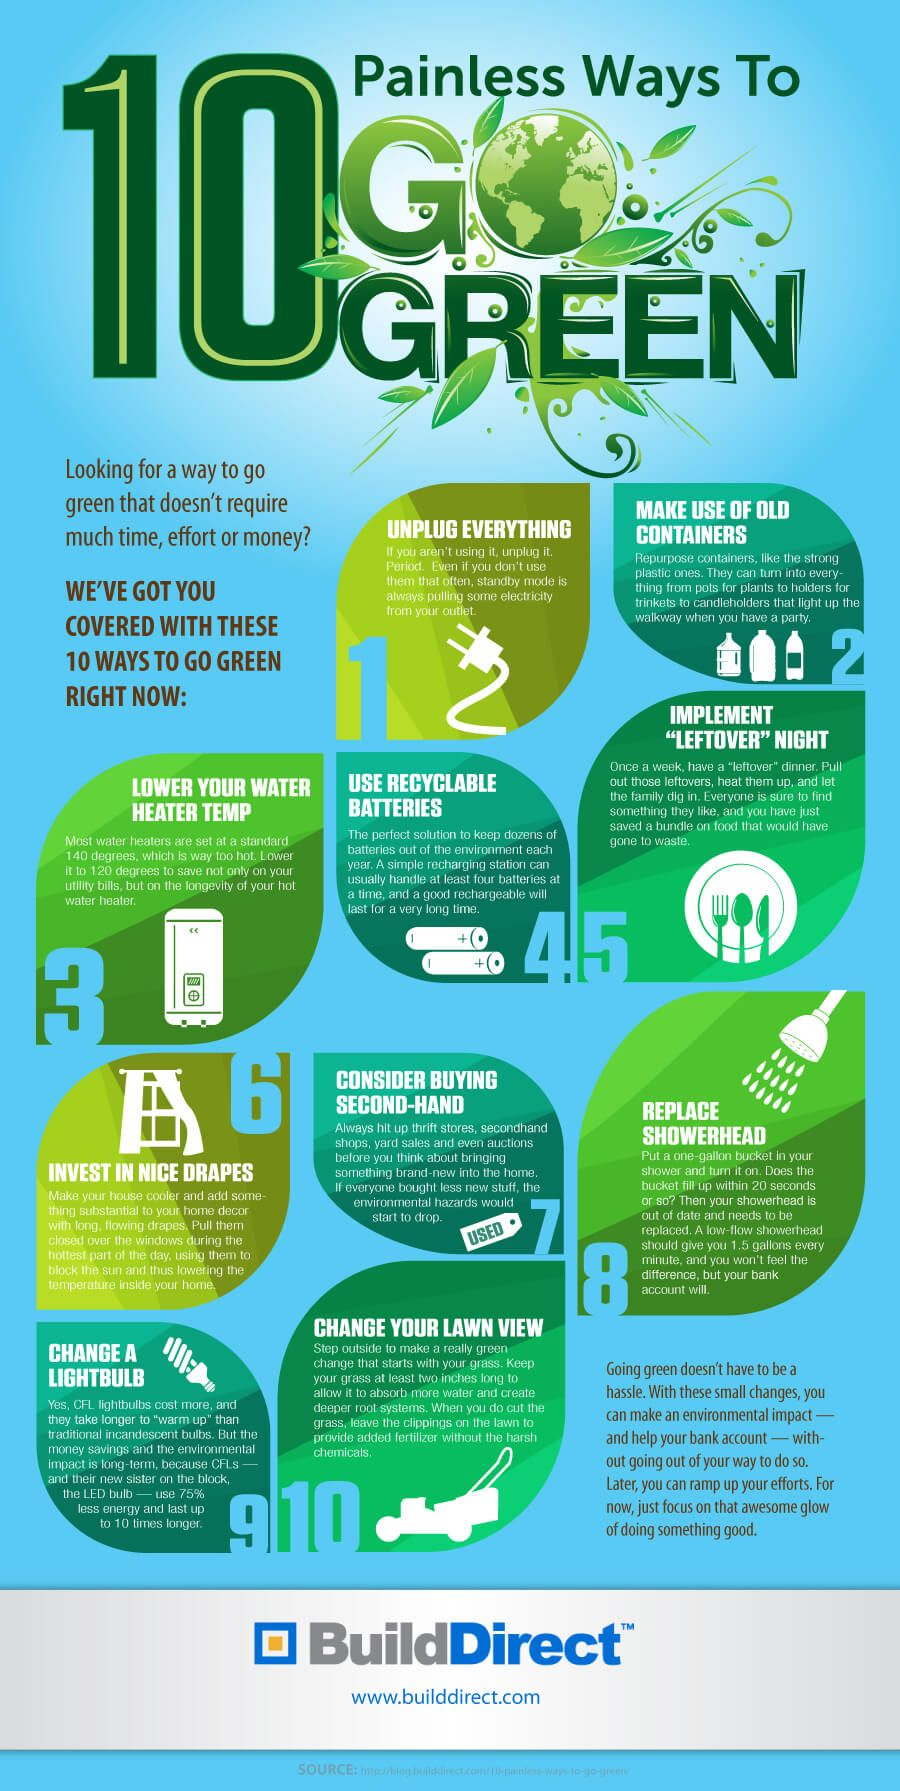 10 Painless Ways To Go Green An Infographic BuildDirect